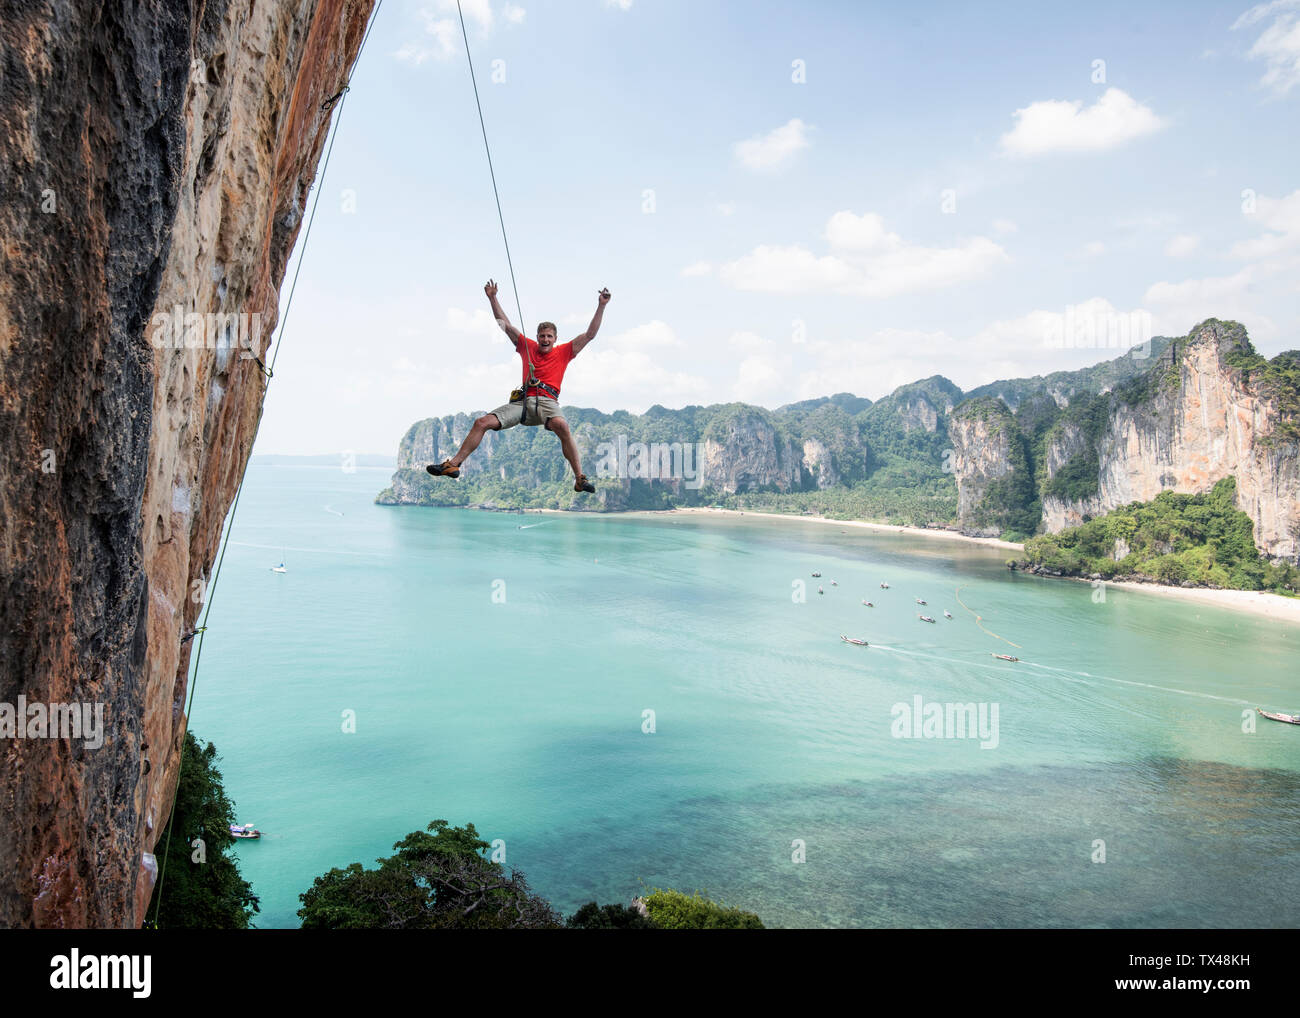 Thailand, Krabi, Thaiwand wall, climber abseiling from rock wall above the sea Stock Photo